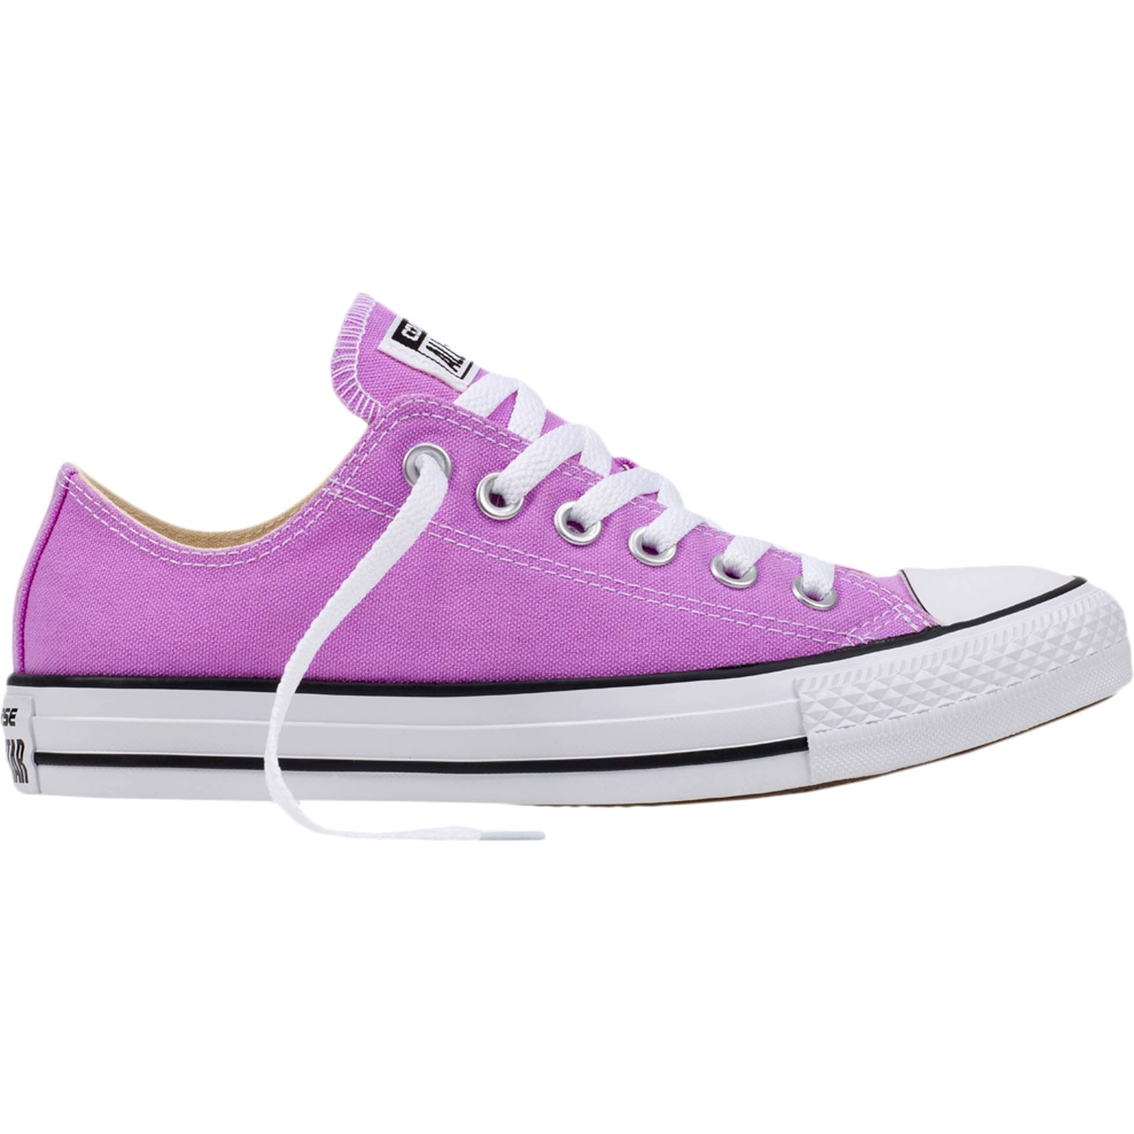 cfd854879af Converse Chuck Taylor Women s All Star Ox Shoe